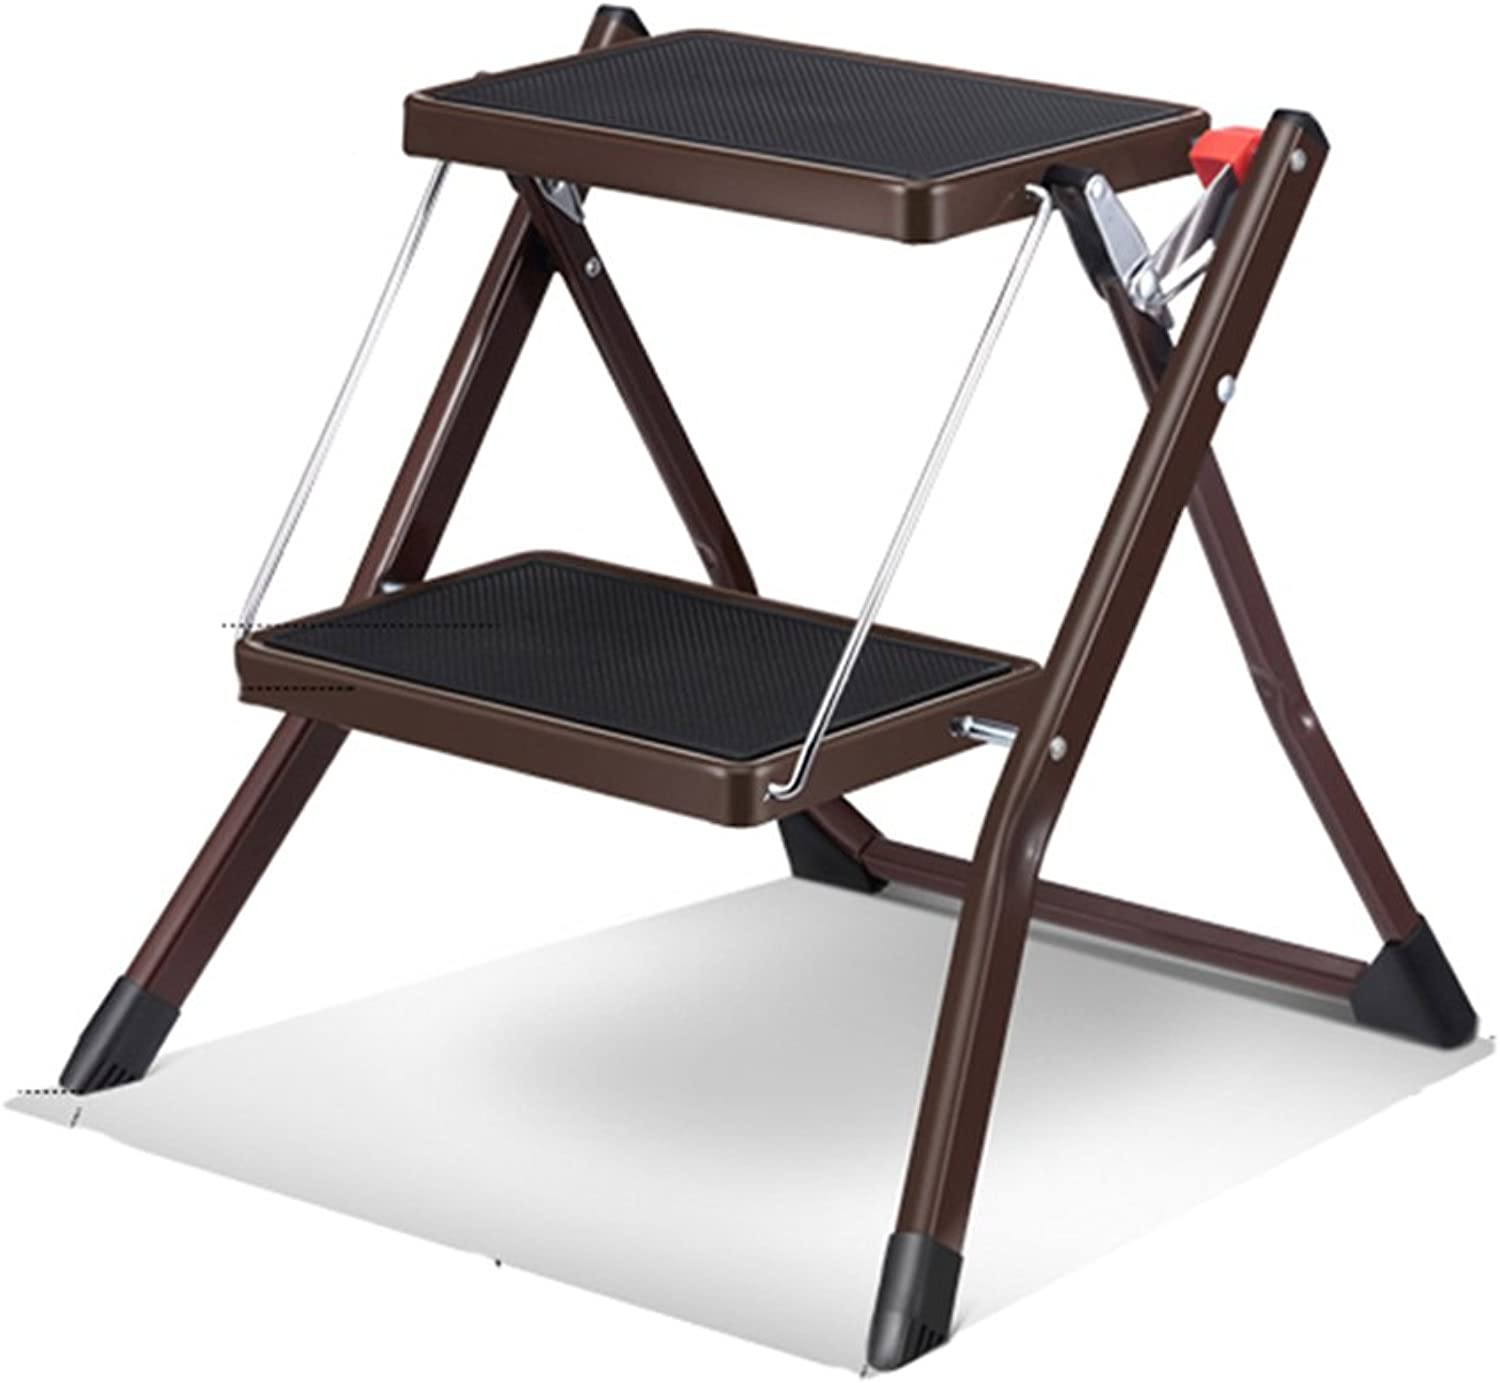 Multipurpose Ladders Step Ladder Aluminum Ladder Folding Chairs 2 Layer Fishing Stool Shelf Dining Chair Low Stool Ladders (color   White, Size   44.5  48.5  49cm)